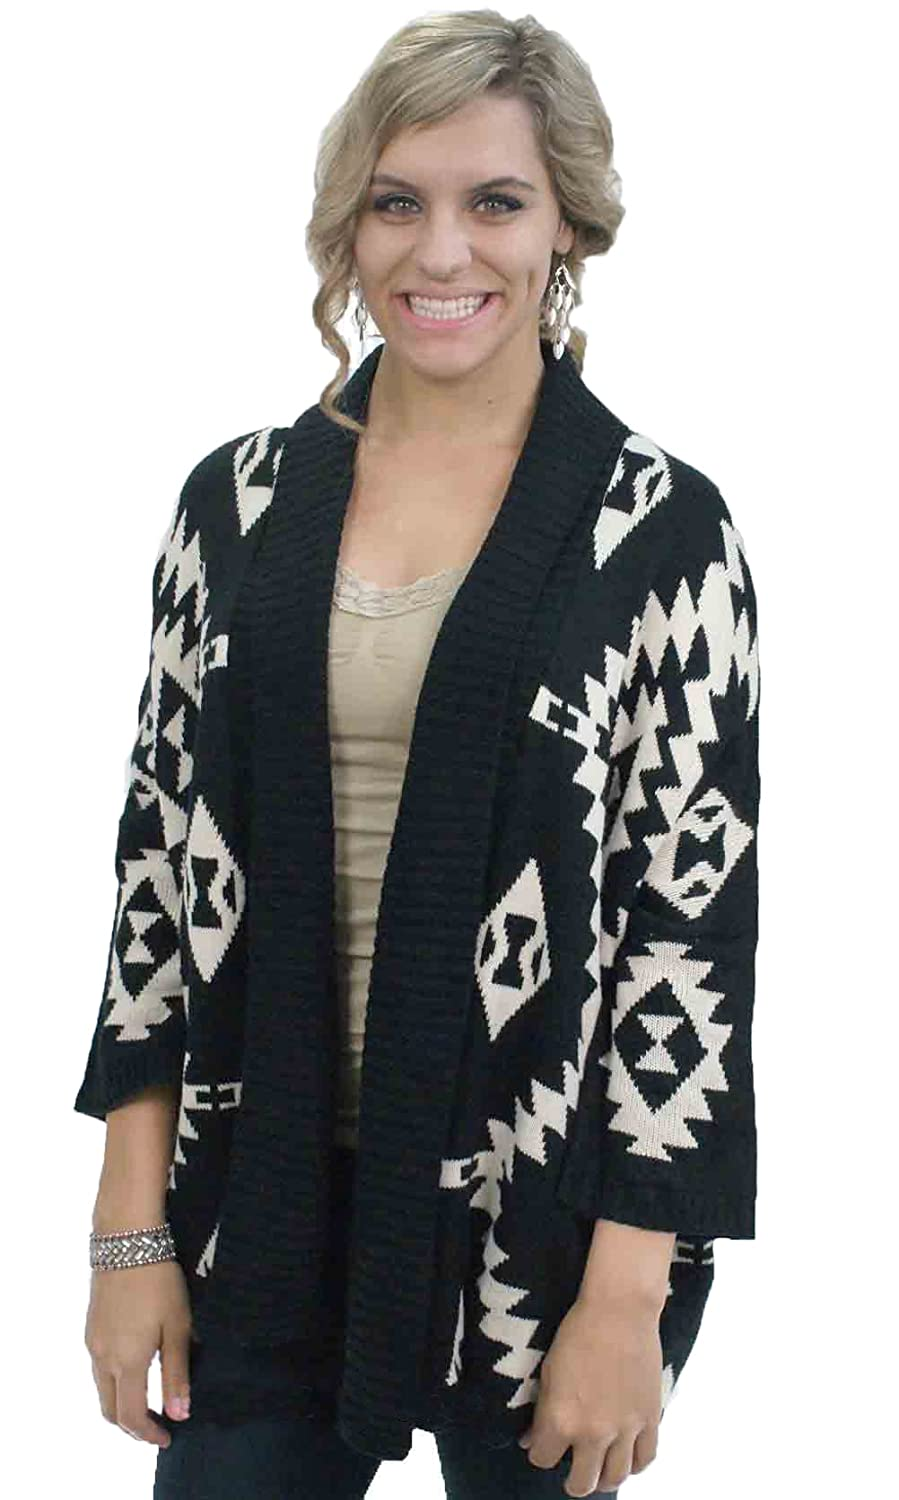 Tribal Chic 3/4 Sleeve Ladies Open Cardigan In Black And Caramel